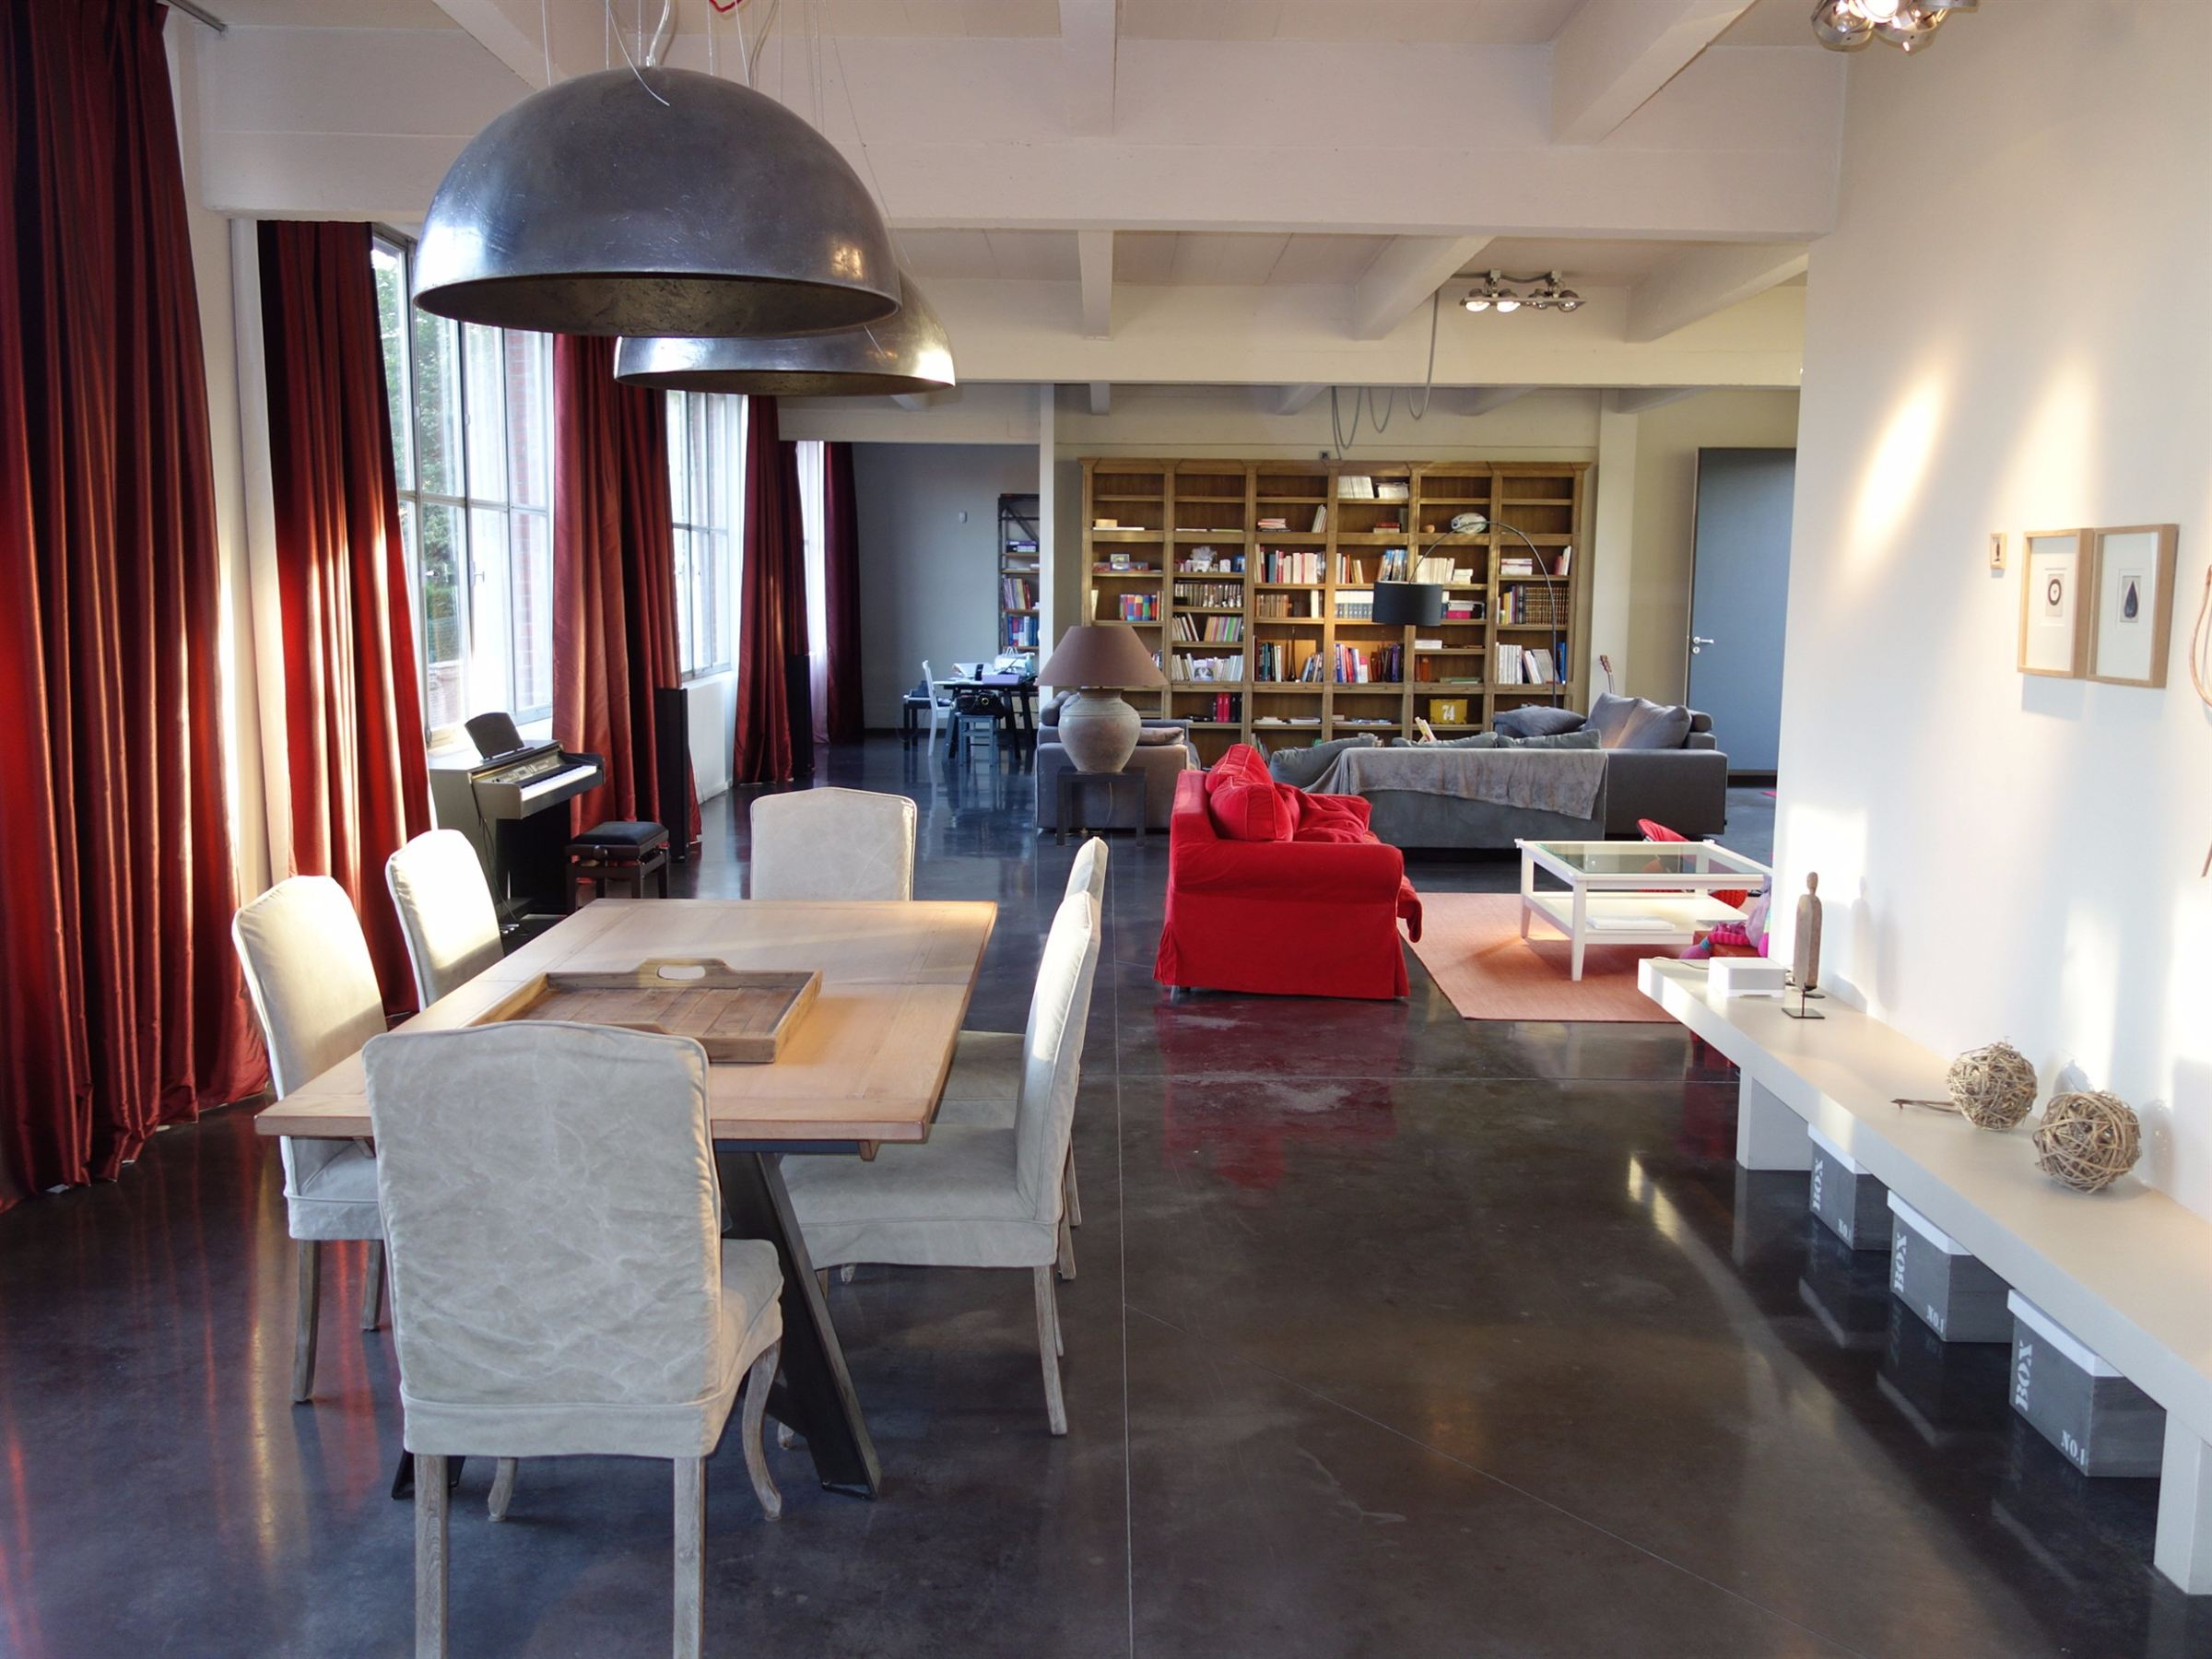 rentals property at Roubaix, Prox. Cross, Loft 390 m² hab. Very upscale